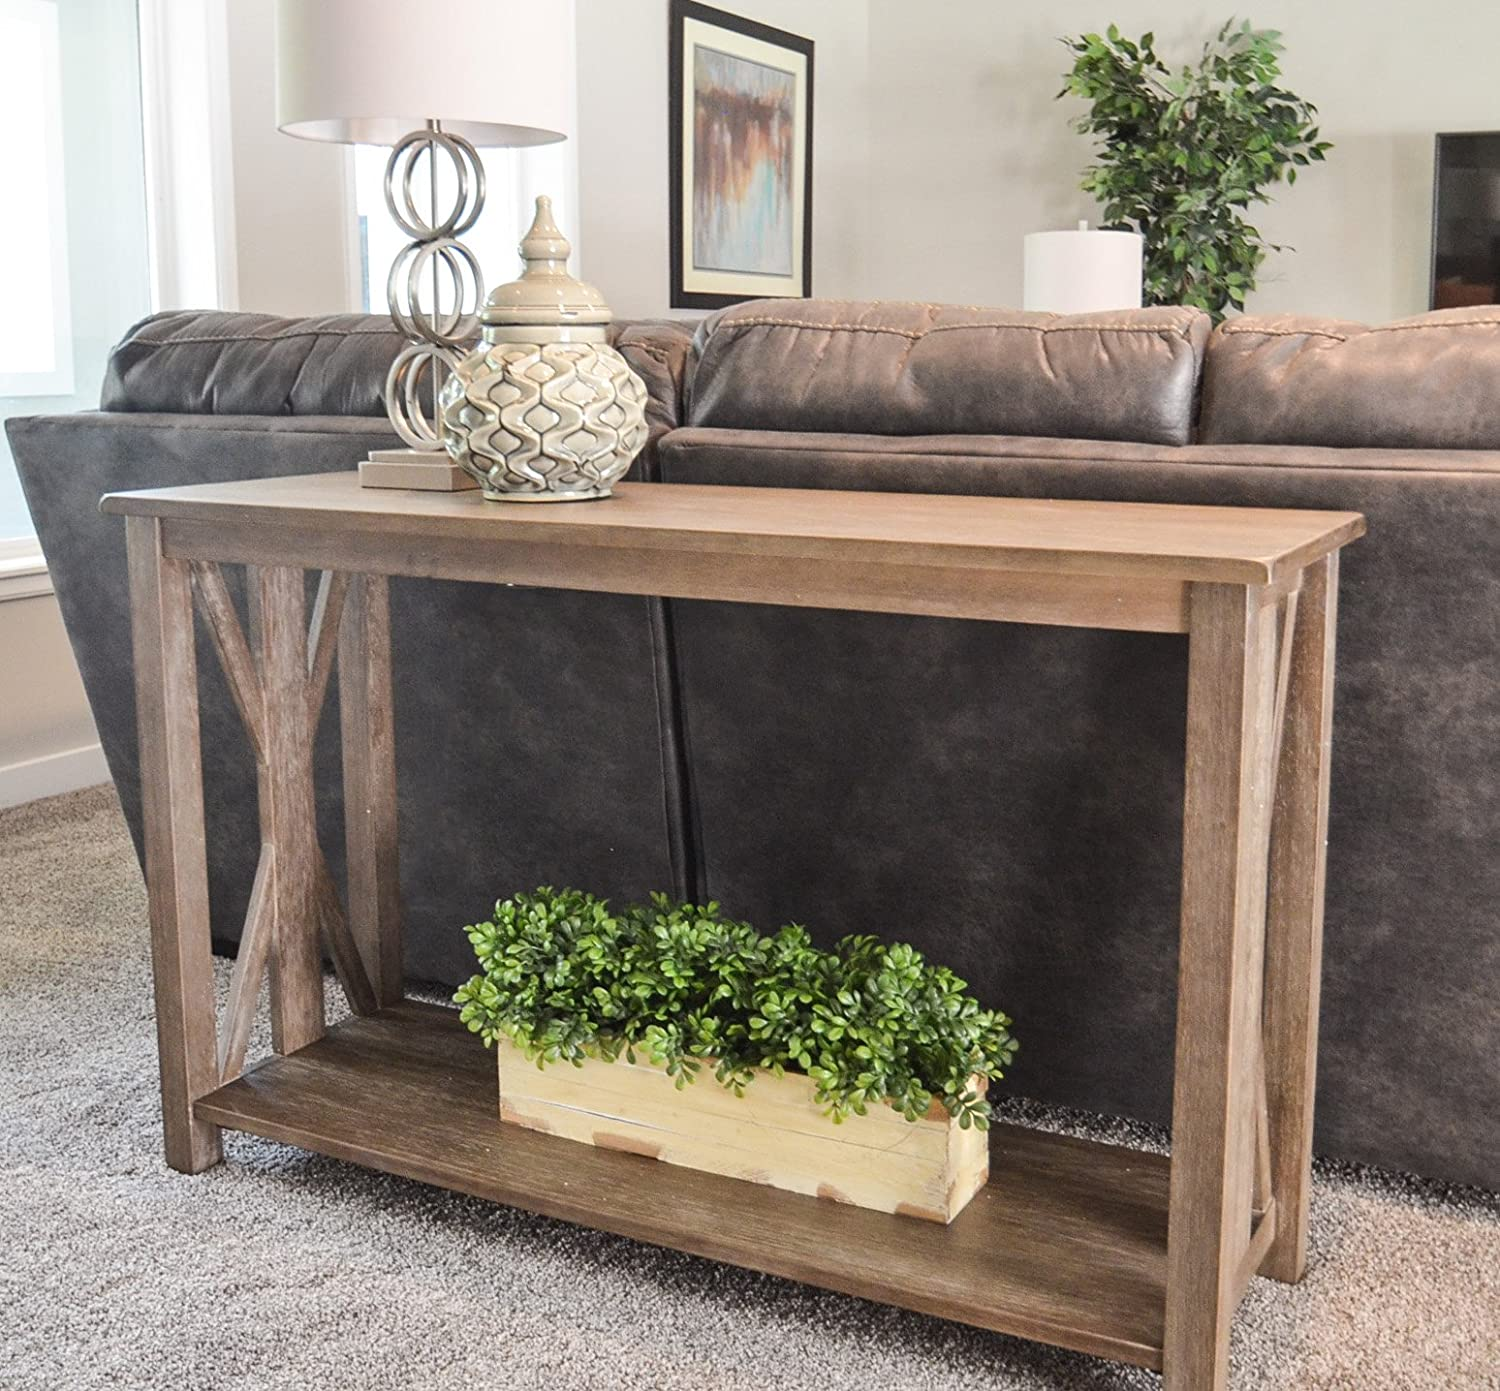 Amazon: Sofa Table - Solid Wood Rustic Farmhouse Style Console Table -  East End Collection – Weathered Gray - Living Room Furniture: Kitchen &  Dining